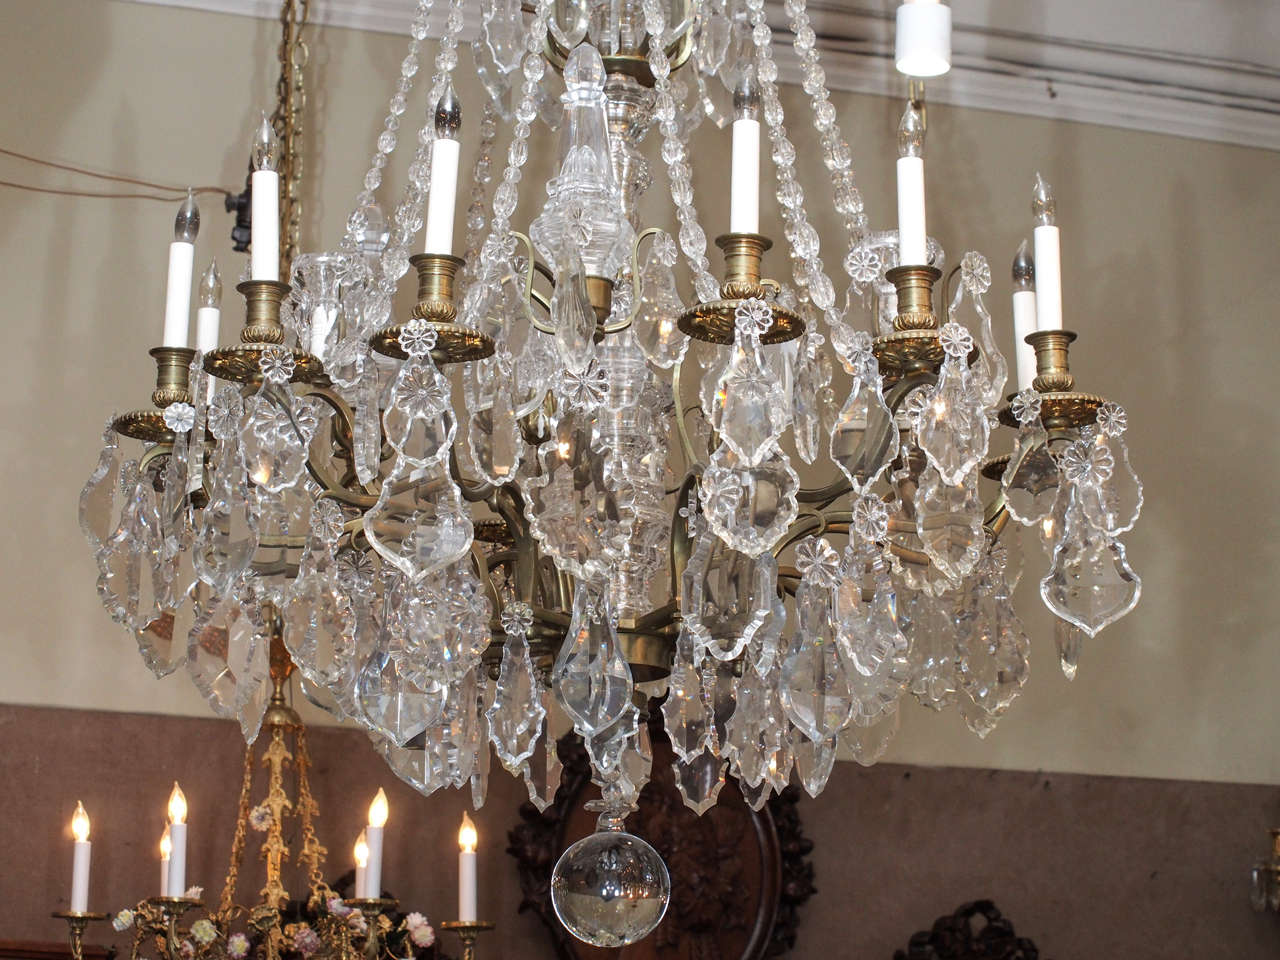 Antique French Louis XVI Baccarat Crystal Chandelier For Sale 1 - Antique French Louis XVI Baccarat Crystal Chandelier At 1stdibs